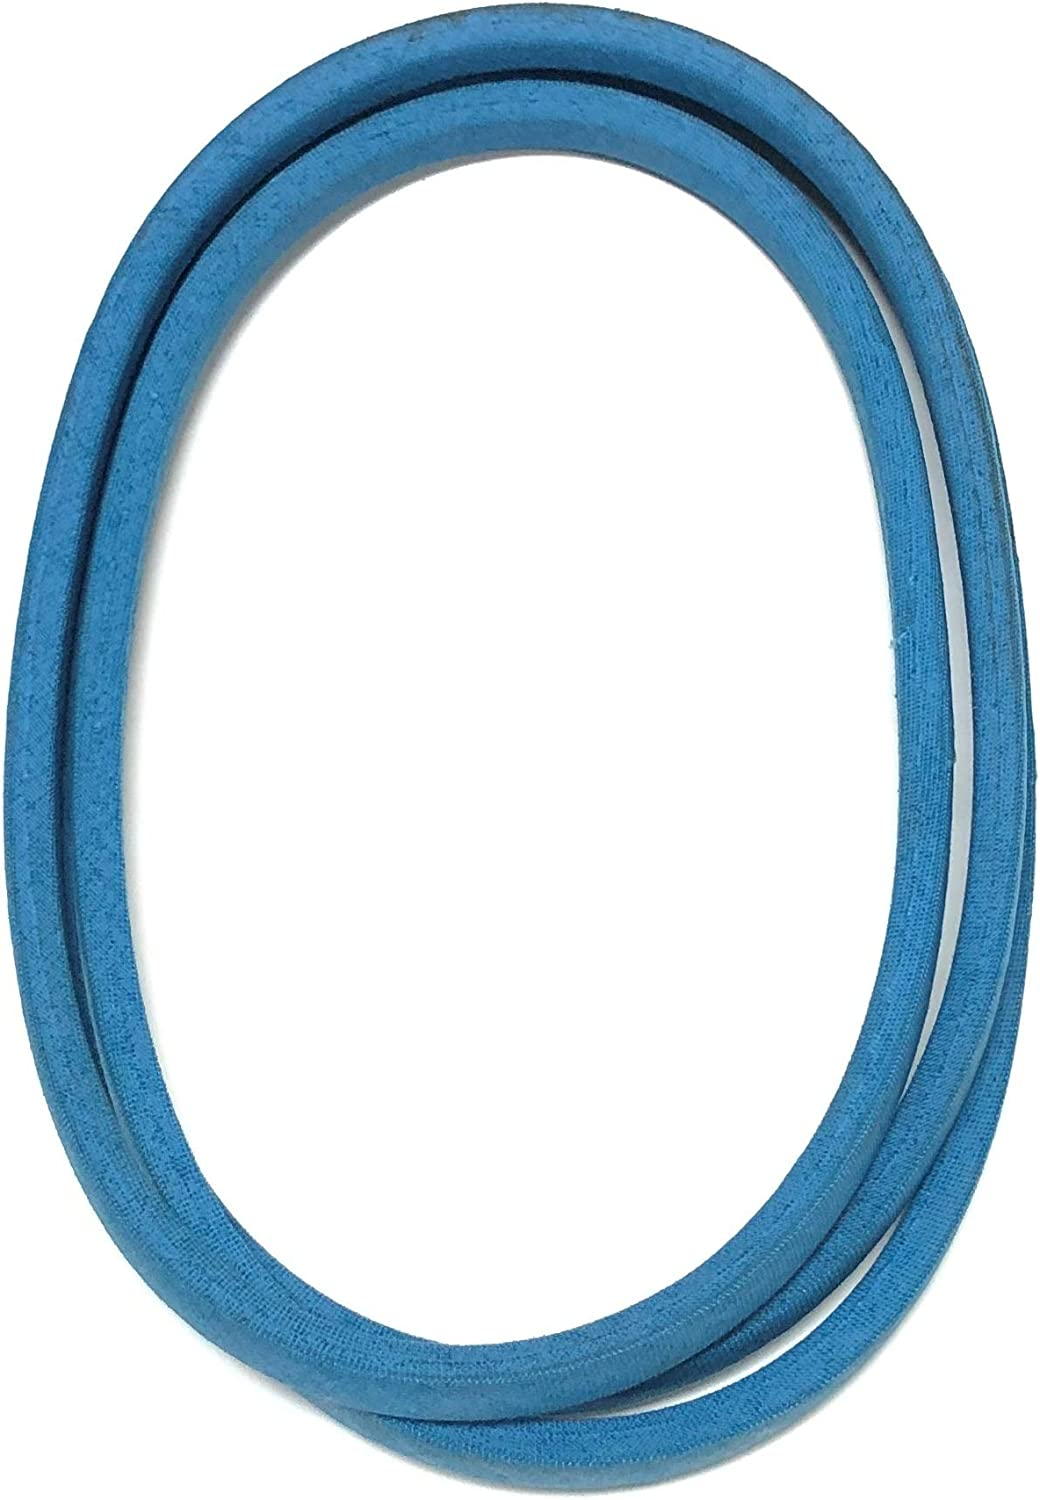 SIMPLICITY MANUFACTURING 1717932 made with Kevlar Replacement Belt